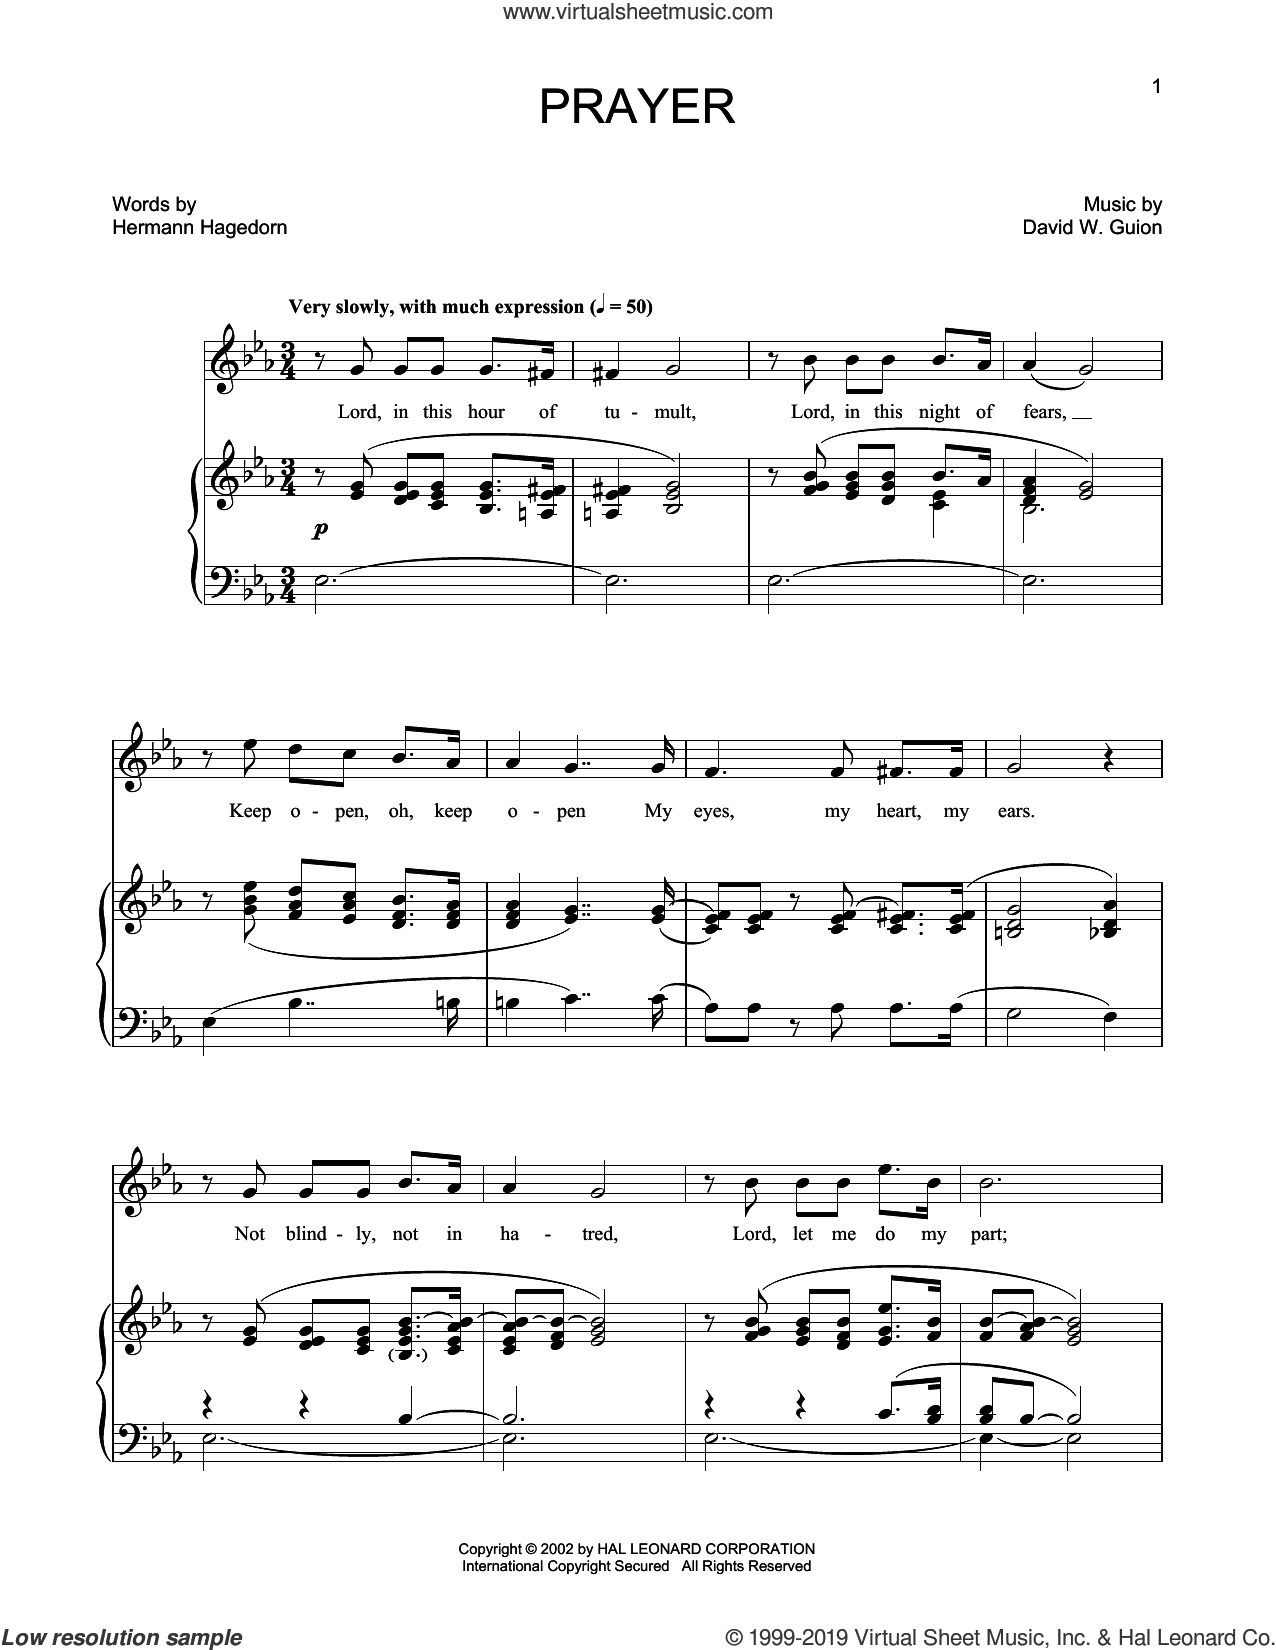 Prayer (arr. Joan Frey Boytim) sheet music for voice and piano (High Voice) by David W. Guion and Hermann Hagedorn, Joan Frey Boytim, David W. Guion and Hermann Hagedorn, classical score, intermediate skill level